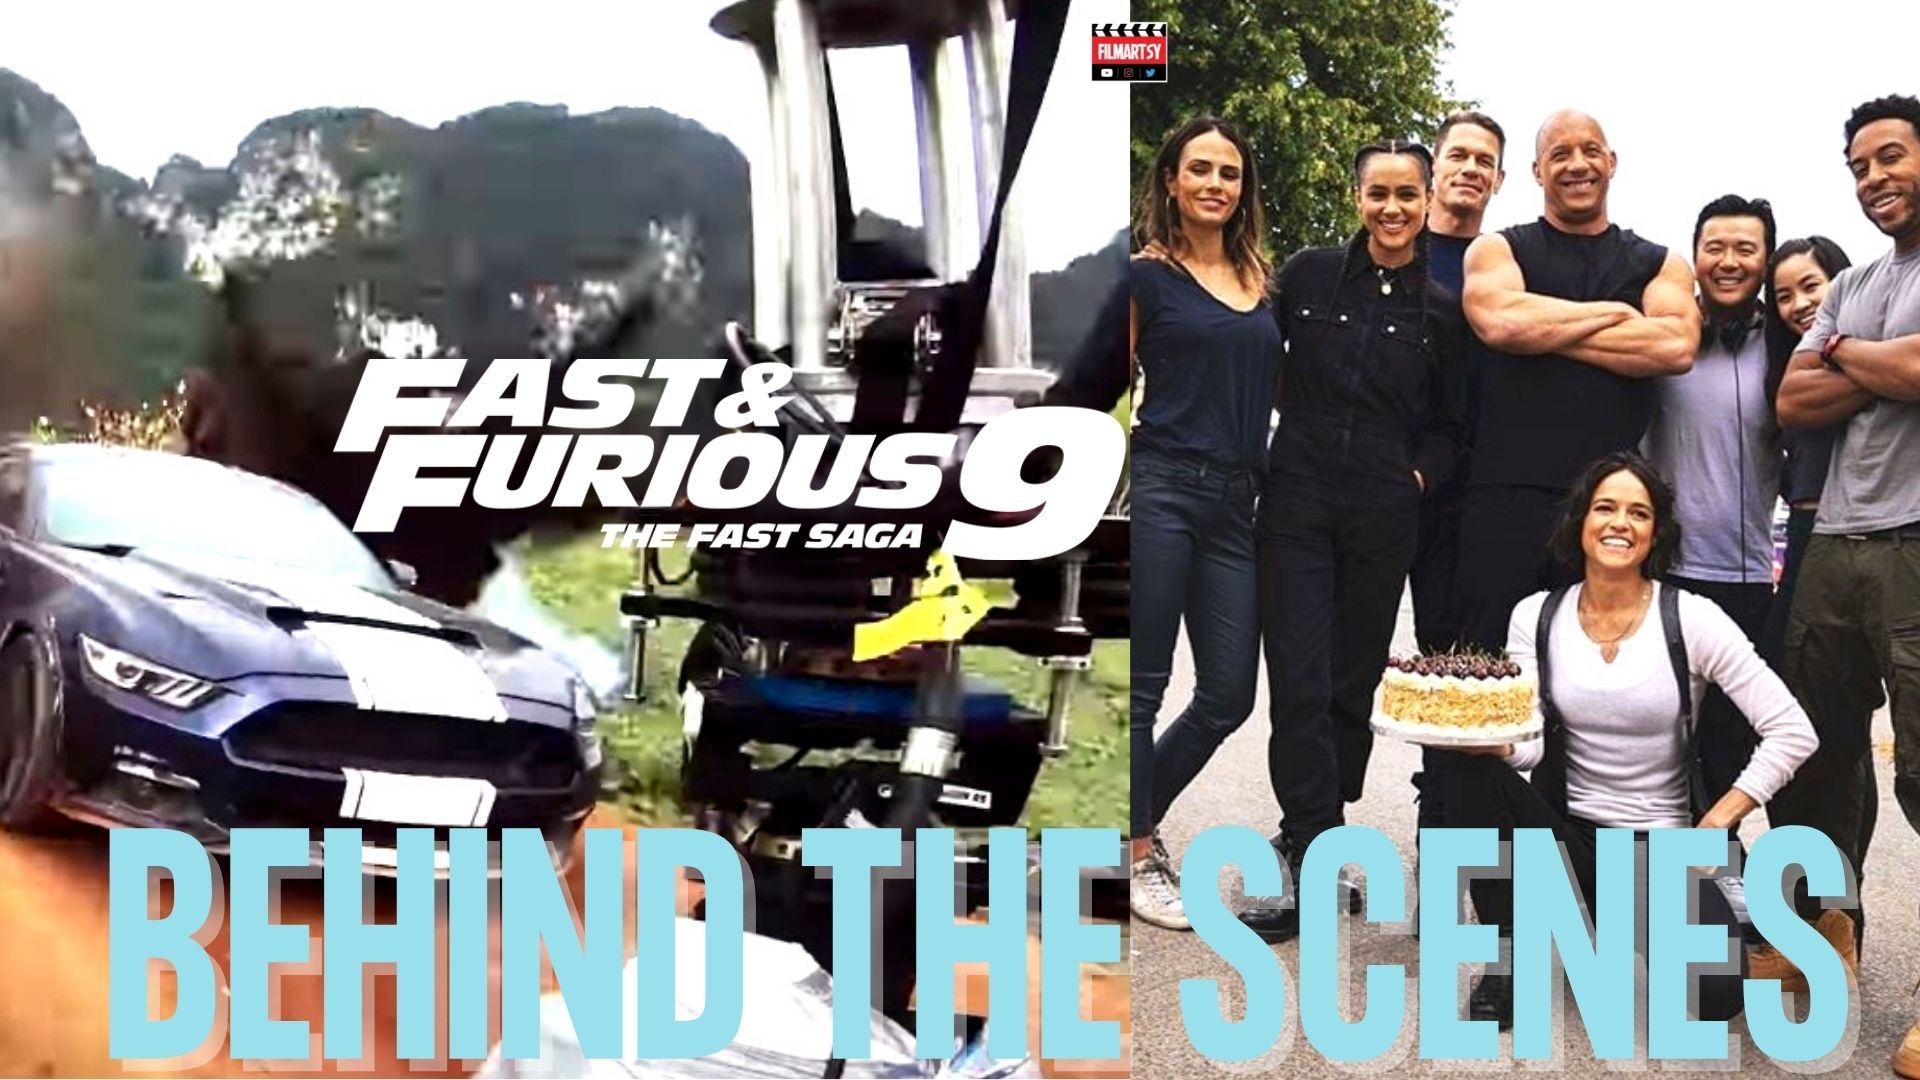 Fast and furious 9 bloopers